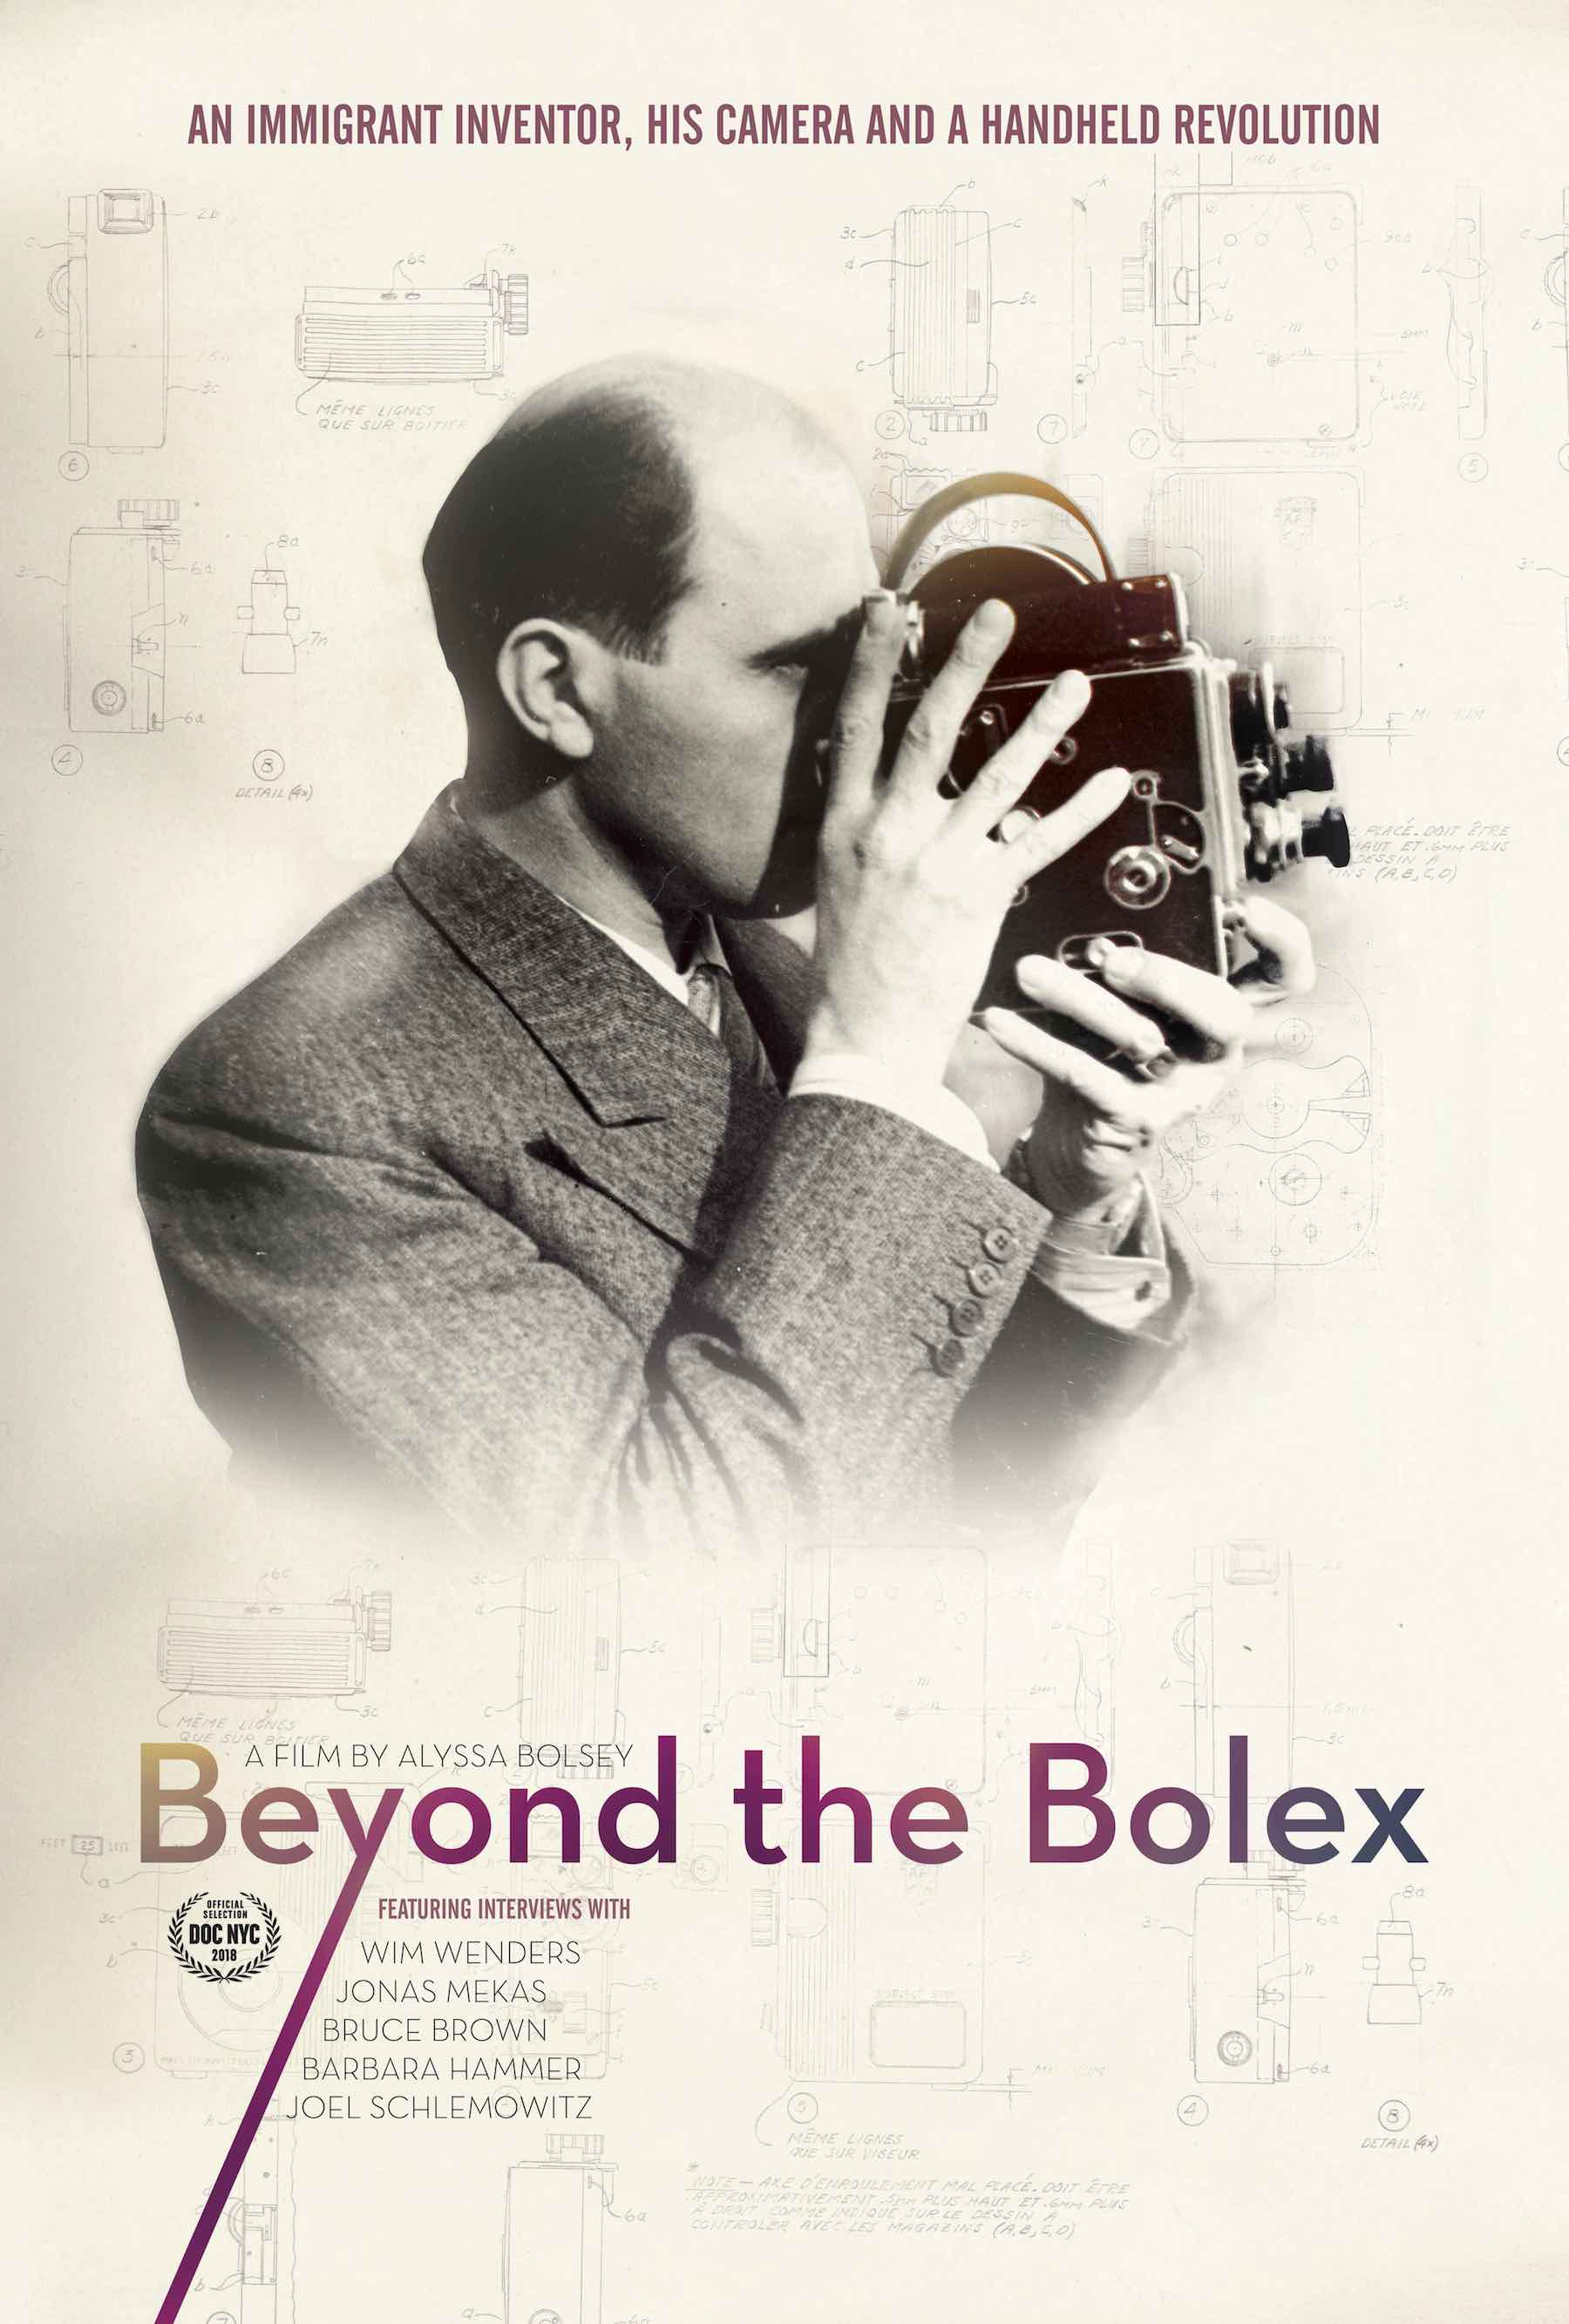 """Beyond the Bolex - 2018, USA/Switzerland, 91 min, in EnglishIn the 1920s immigrant inventor Jacques Bolsey aimed to disrupt the early film industry with a motion picture camera for the masses: the iconic Bolex. Over 90 years later, filmmaker Alyssa Bolsey pieces together the fragments of a forgotten family archive to reveal the epic story of her great-grandfather in """"Beyond the Bolex."""" Interviewing family members and renowned filmmakers, Alyssa travels to Switzerland, and delves into Jacques' personal diary, film reels and collected images in order to understand the man and his impact on generations of filmmakers."""